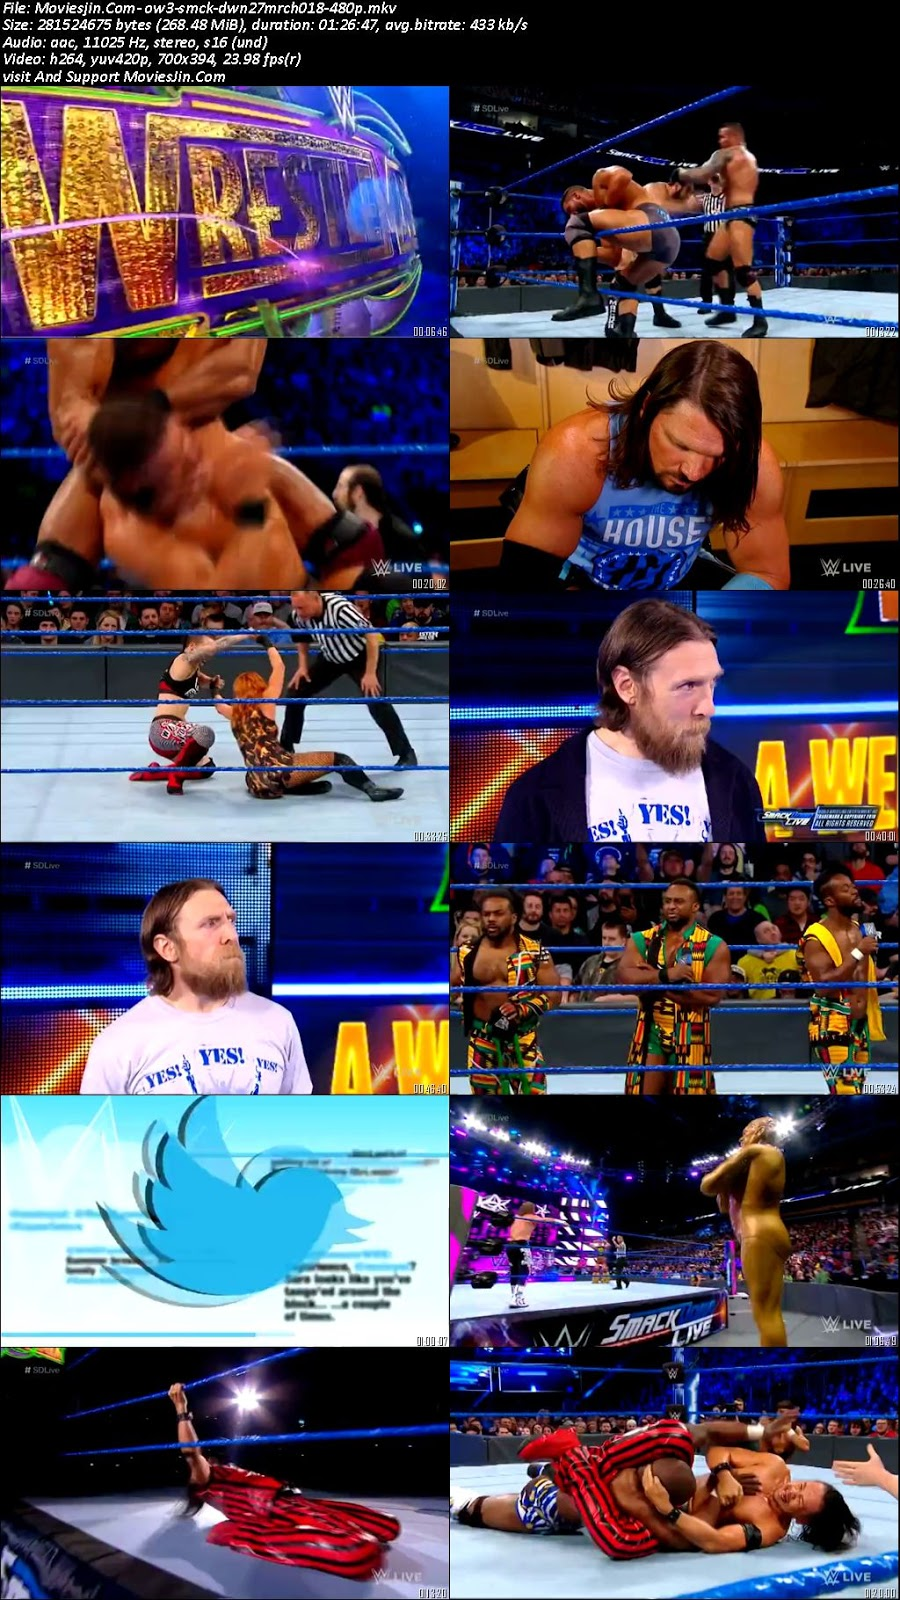 Watch Online WWE Smackdown Live 27th March 2018 HD 480p TVRip 300MB Full Movie Download Khatrimaza, free download 9xmovies,